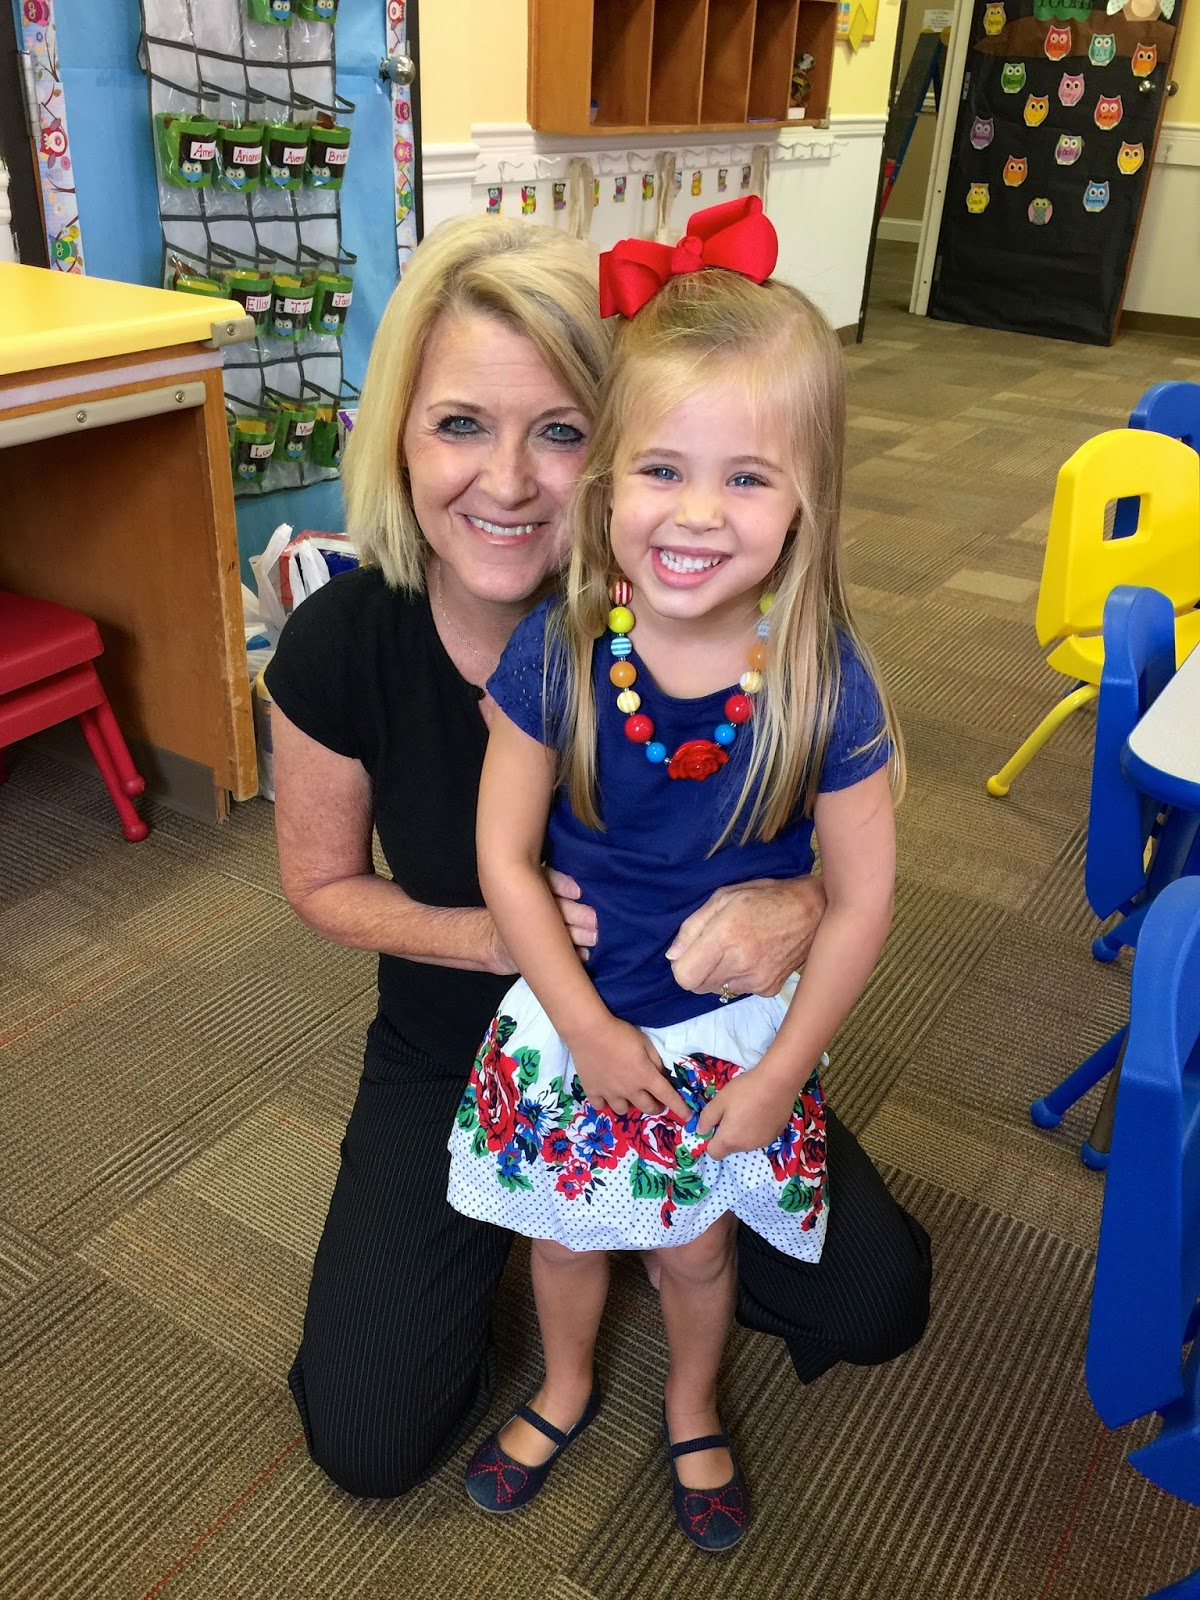 Britt's 1st Day of 3 Year Old Preschool